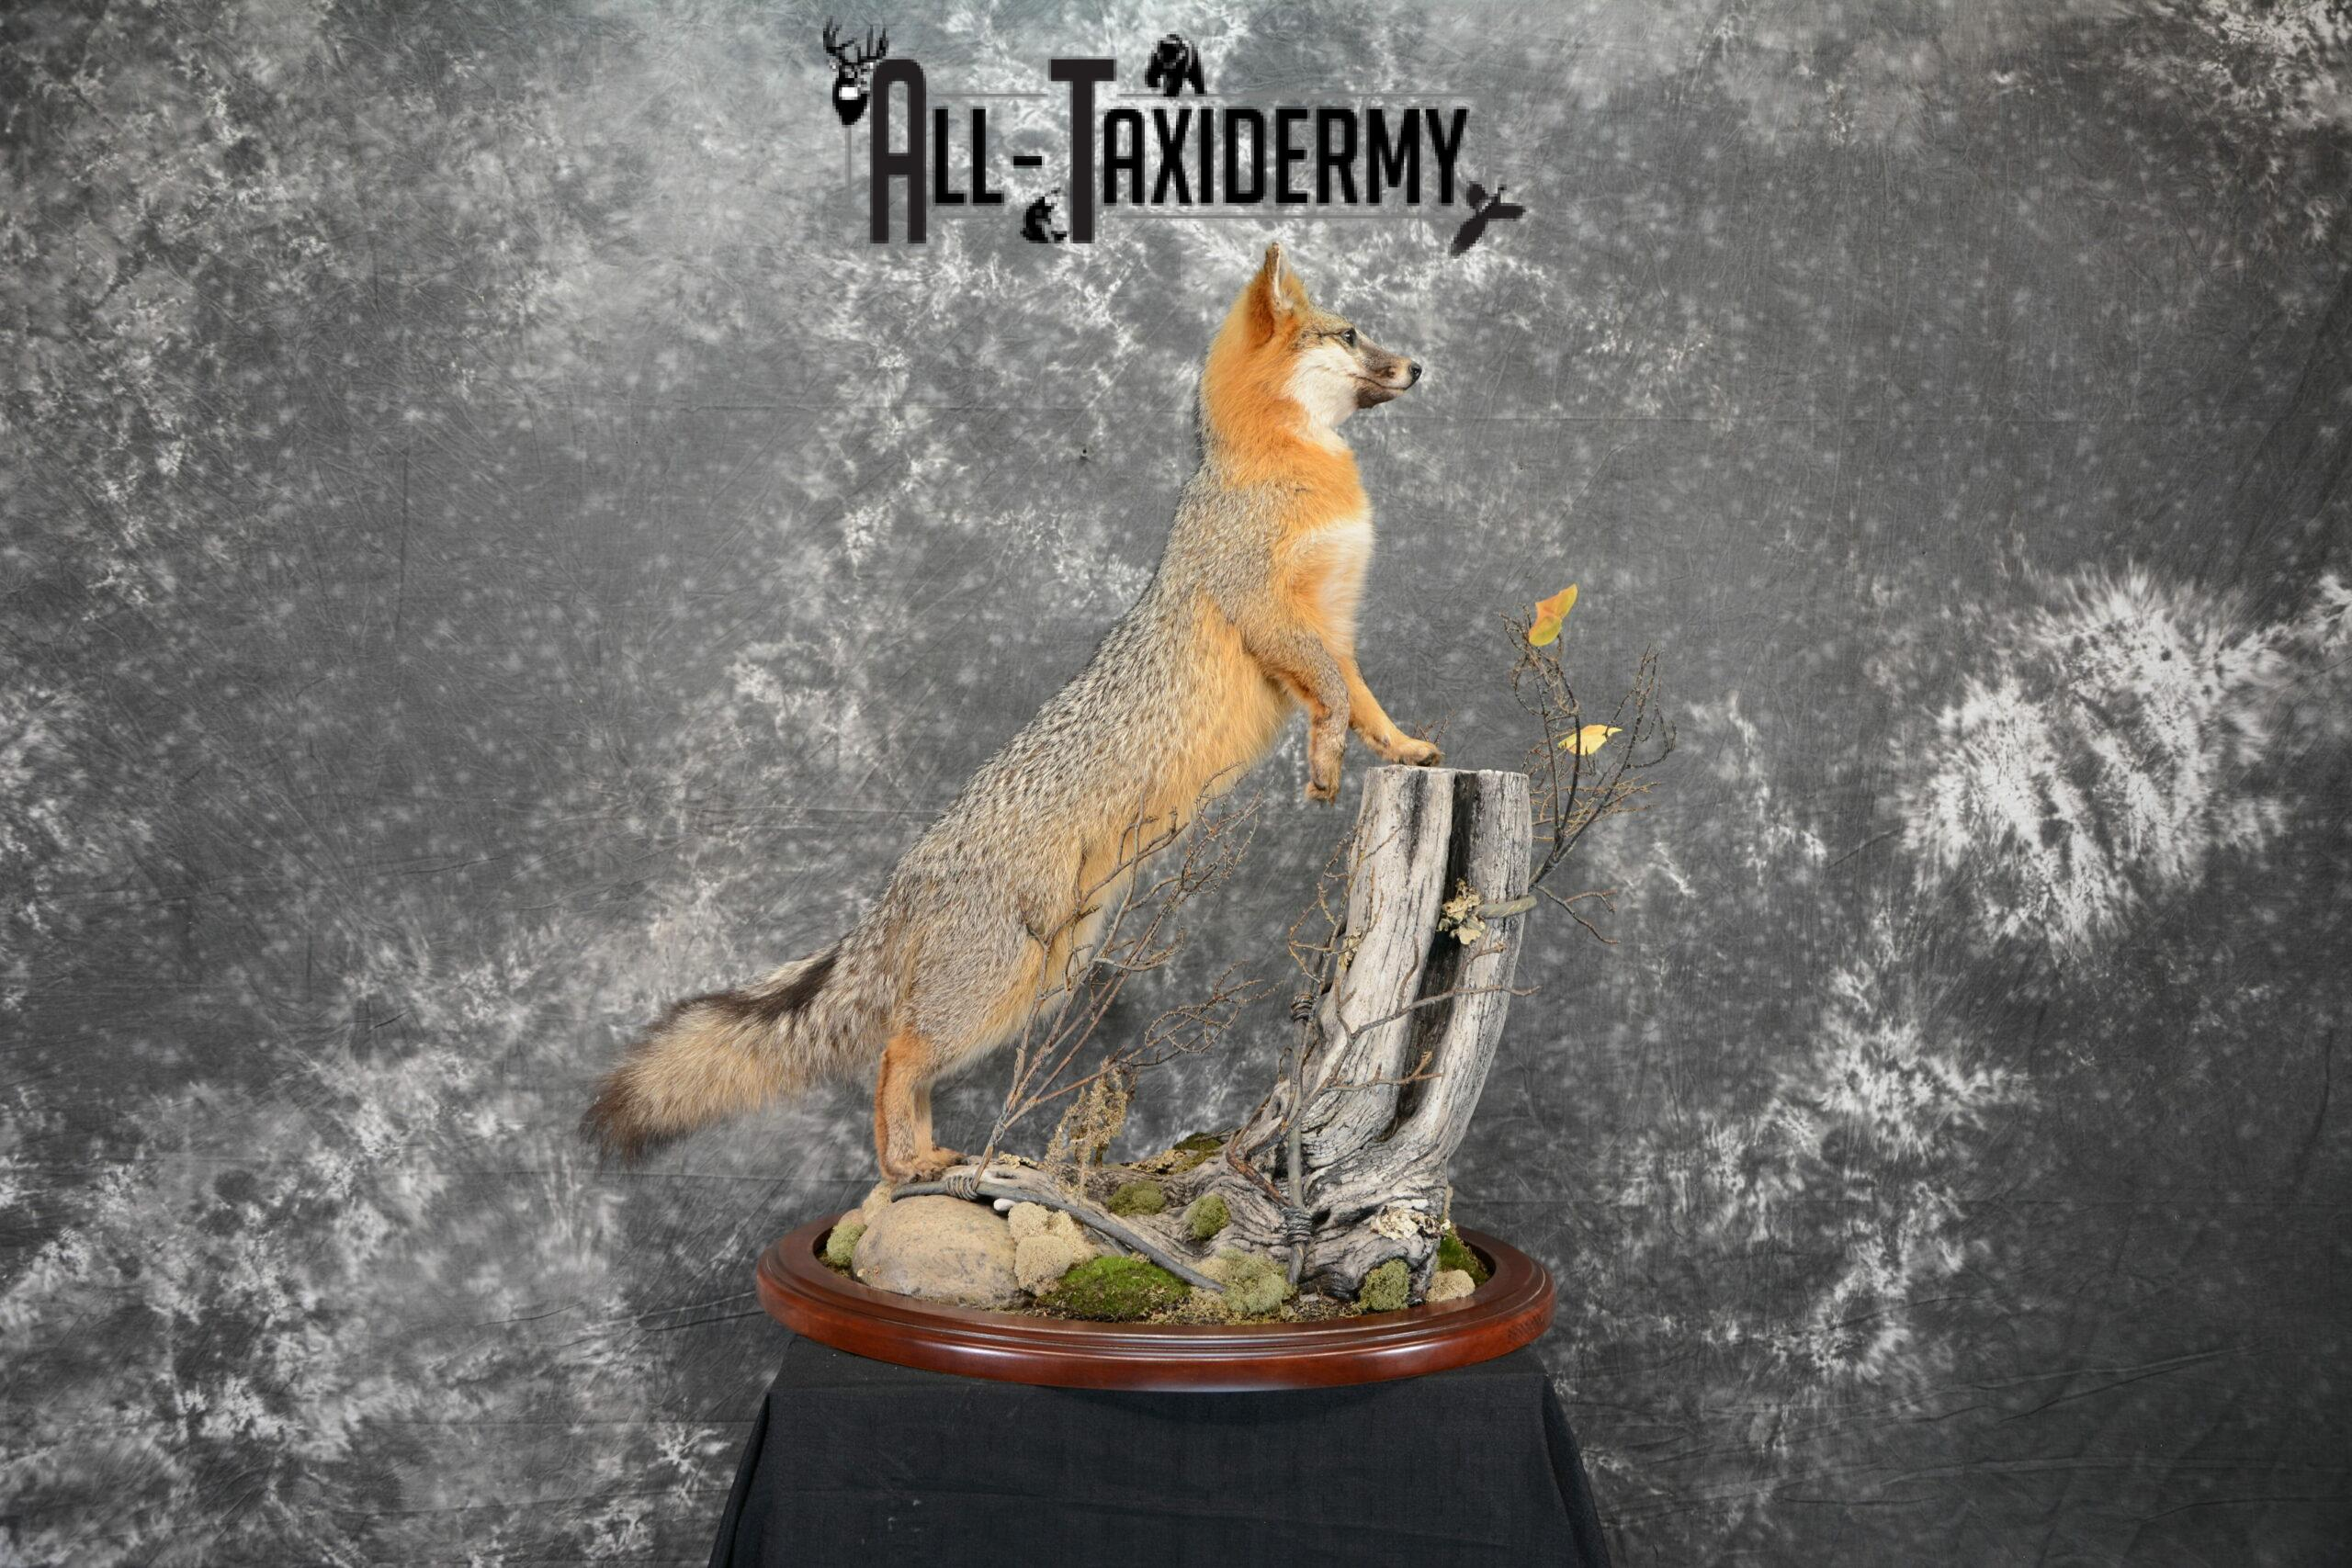 Gray Fox Taxidermy for Sale SKU 1062